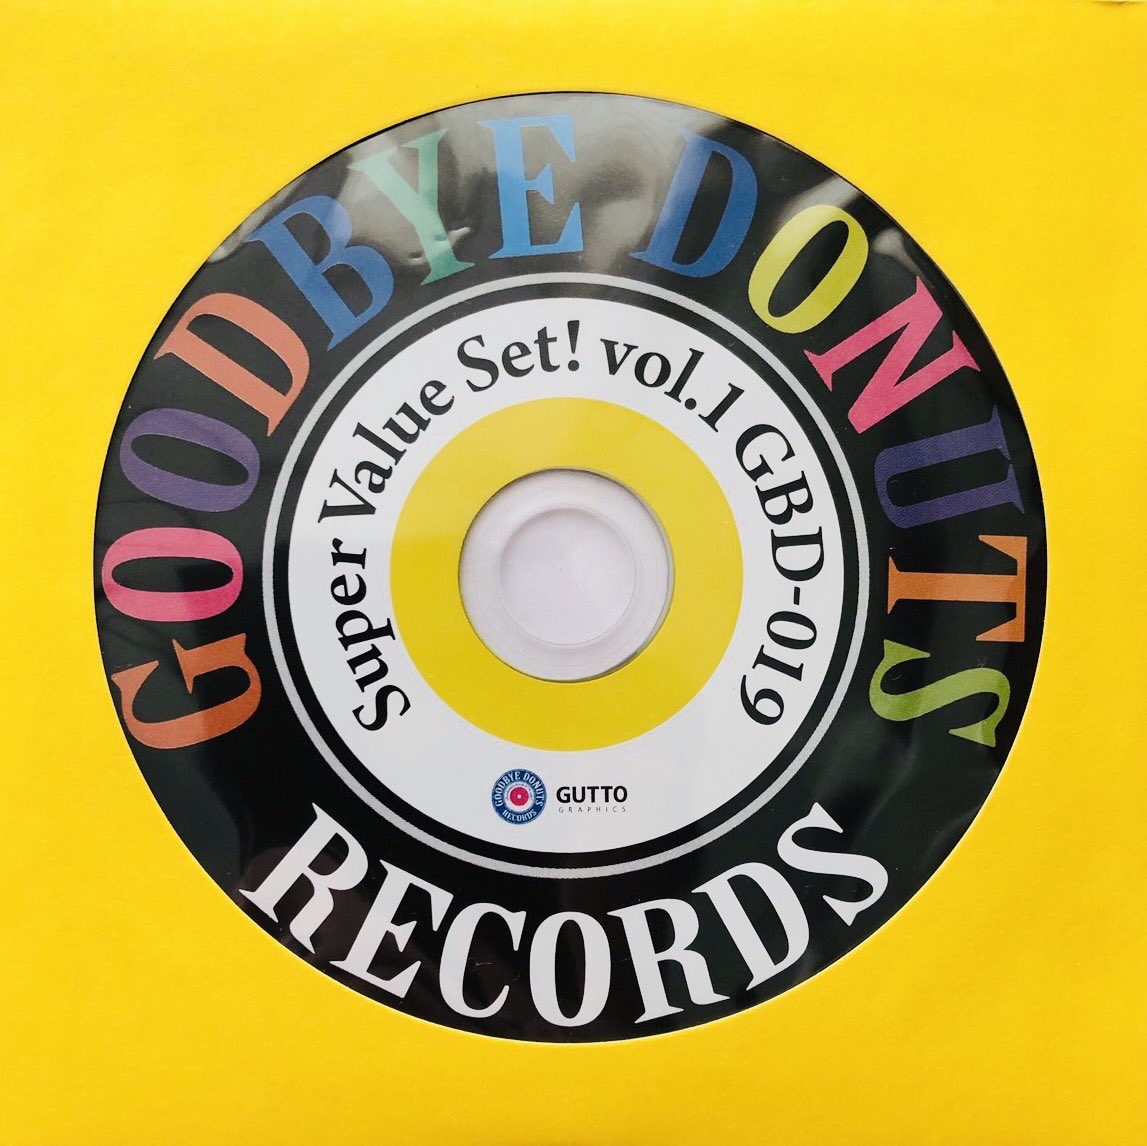 Goodbye Donuts Recordsコンピレーション 「Super Value Set vol.1!」リリース